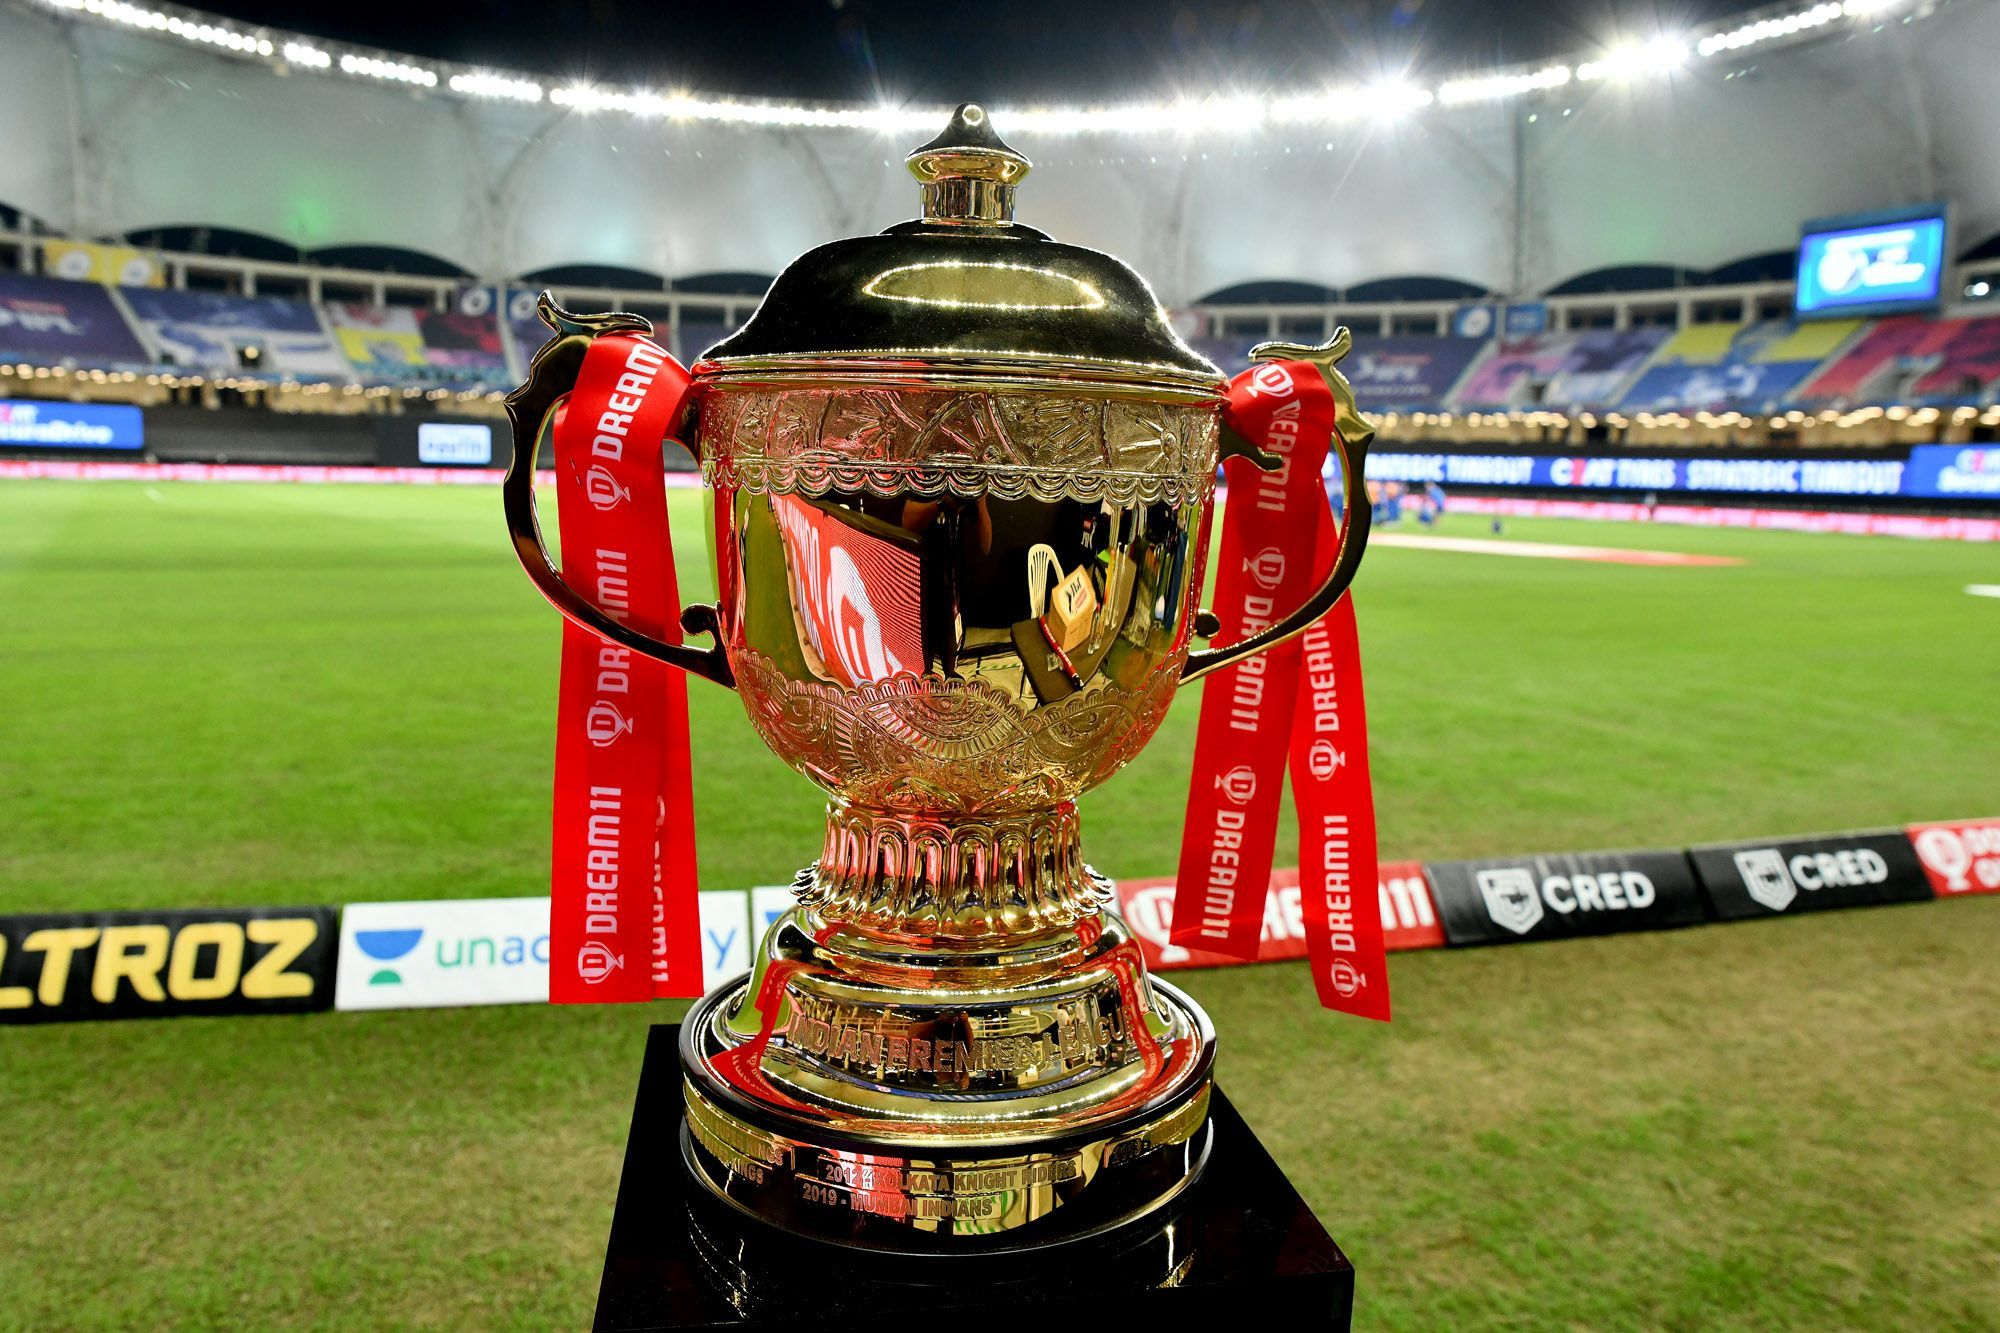 Addition of new franchise in IPL 2021 by BCCI which will be conducted after Diwali